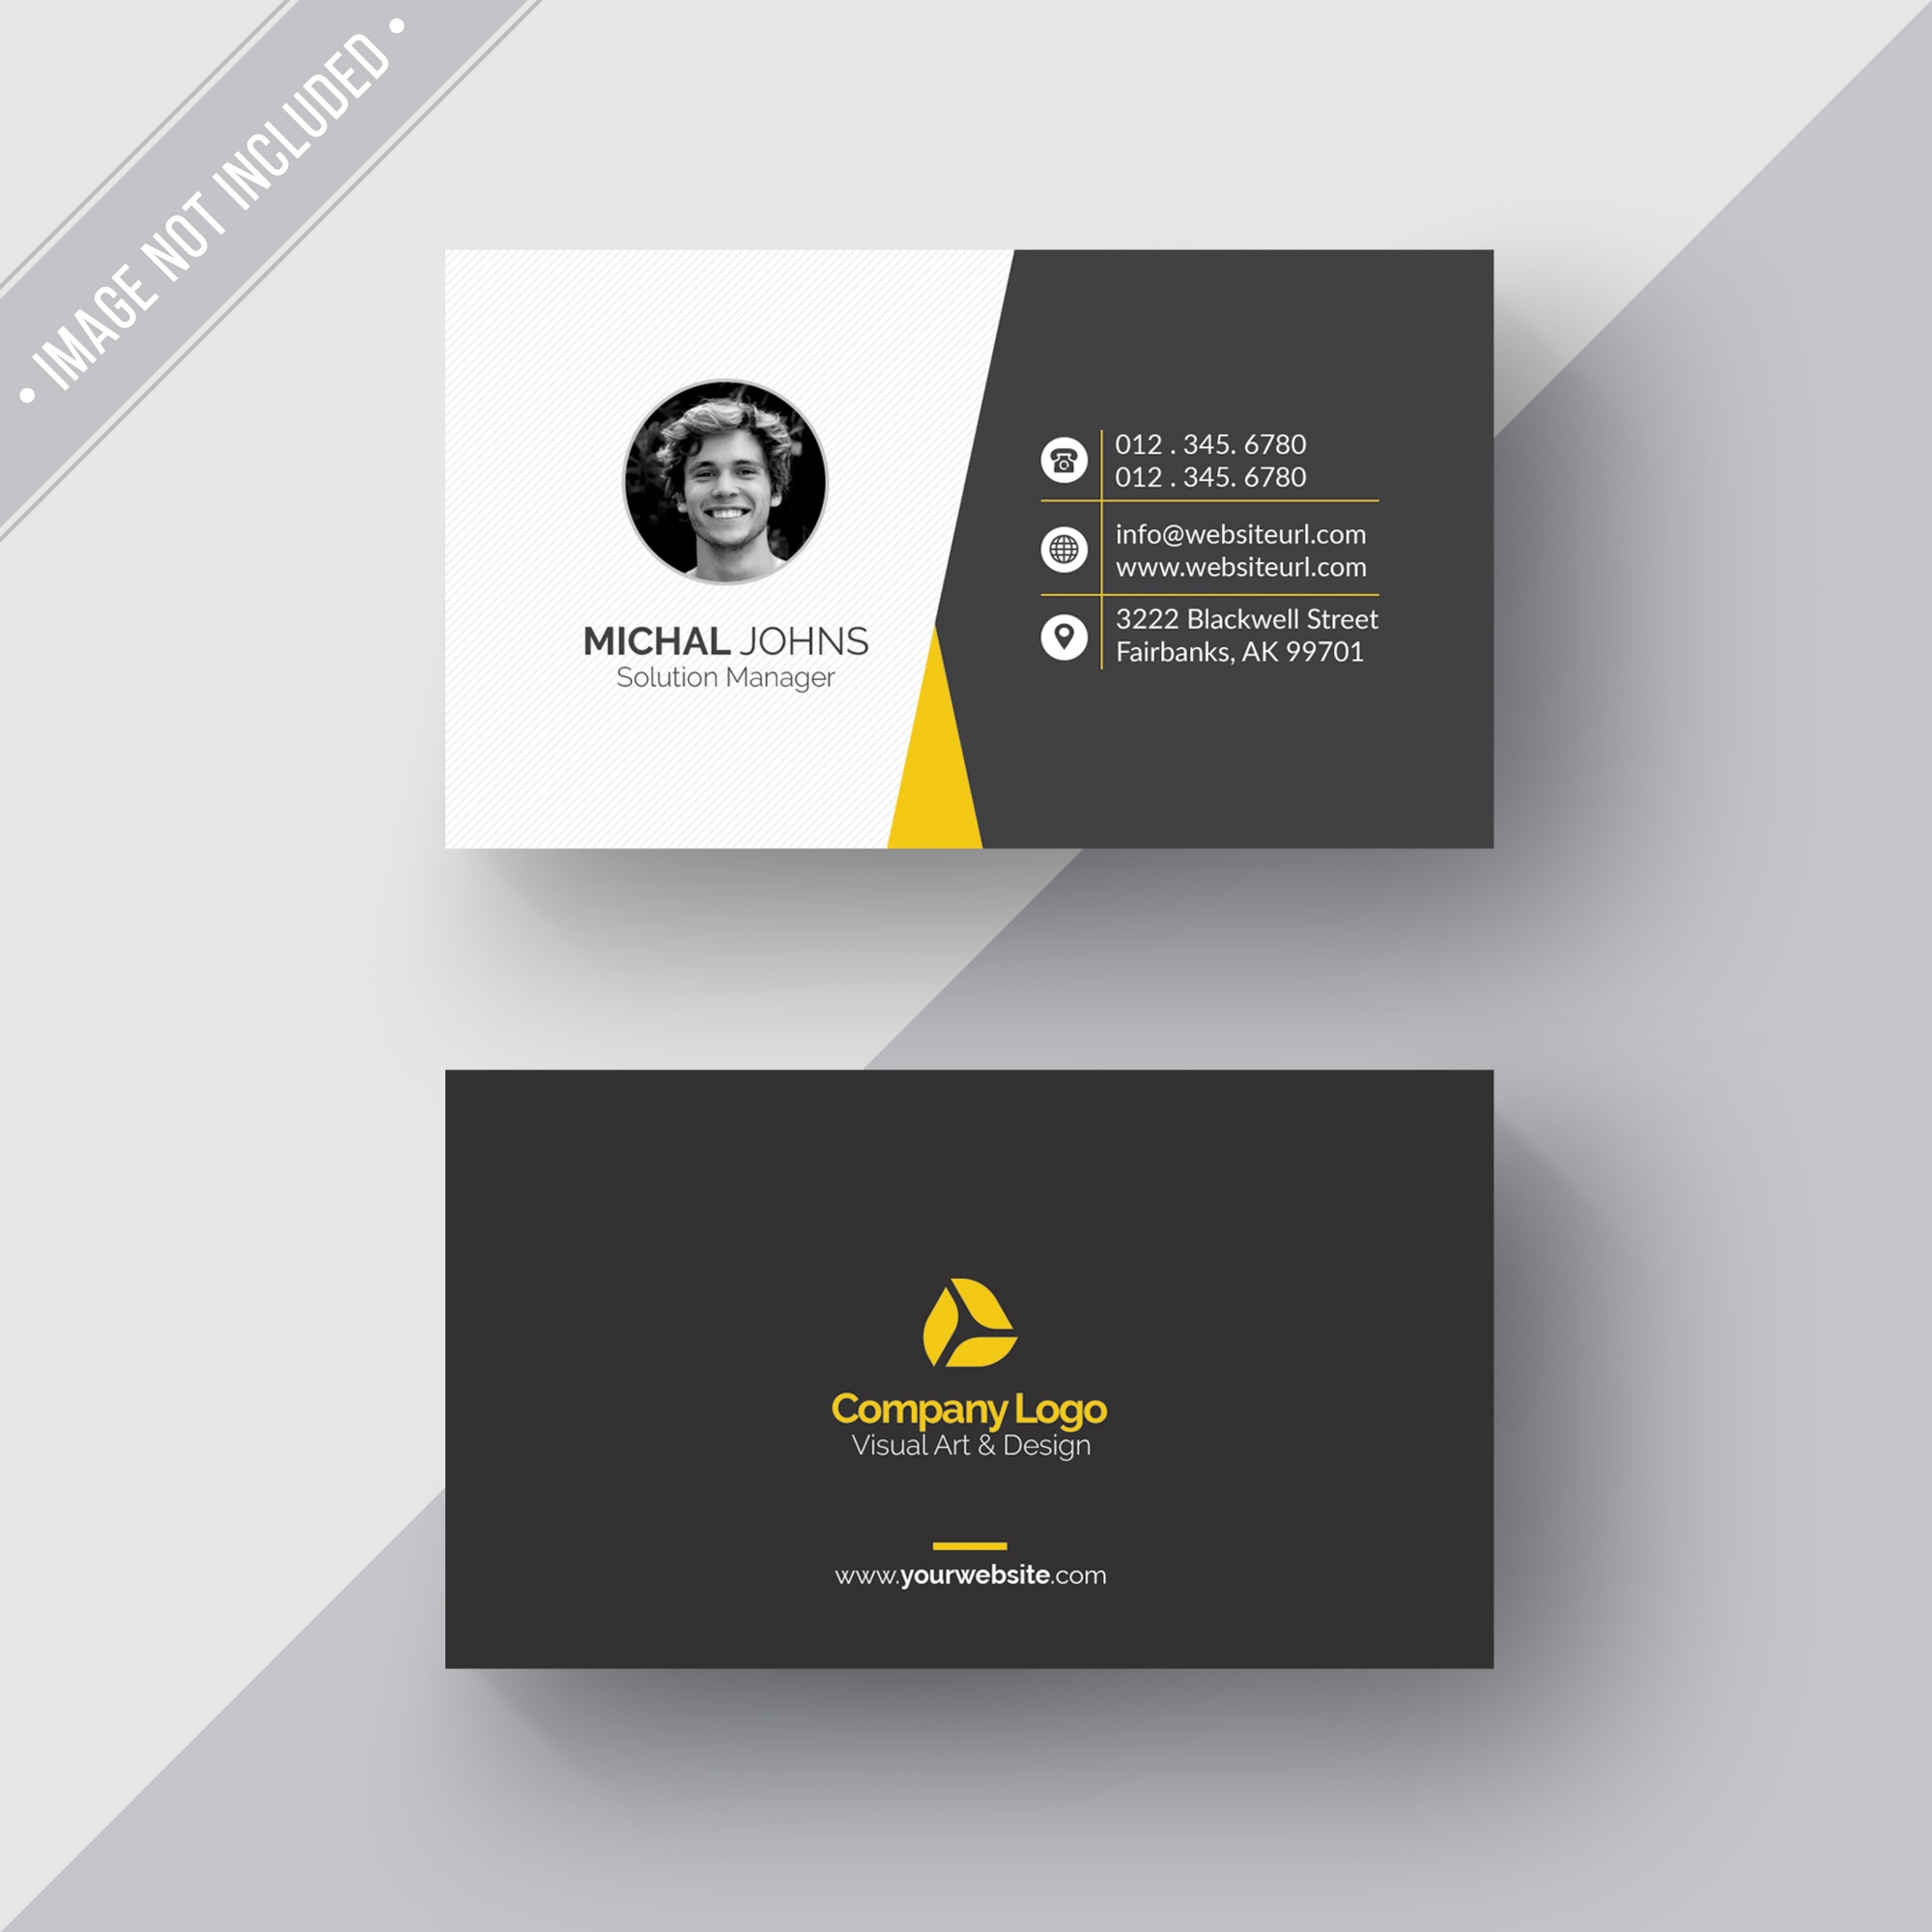 Black and white business card with yellow details